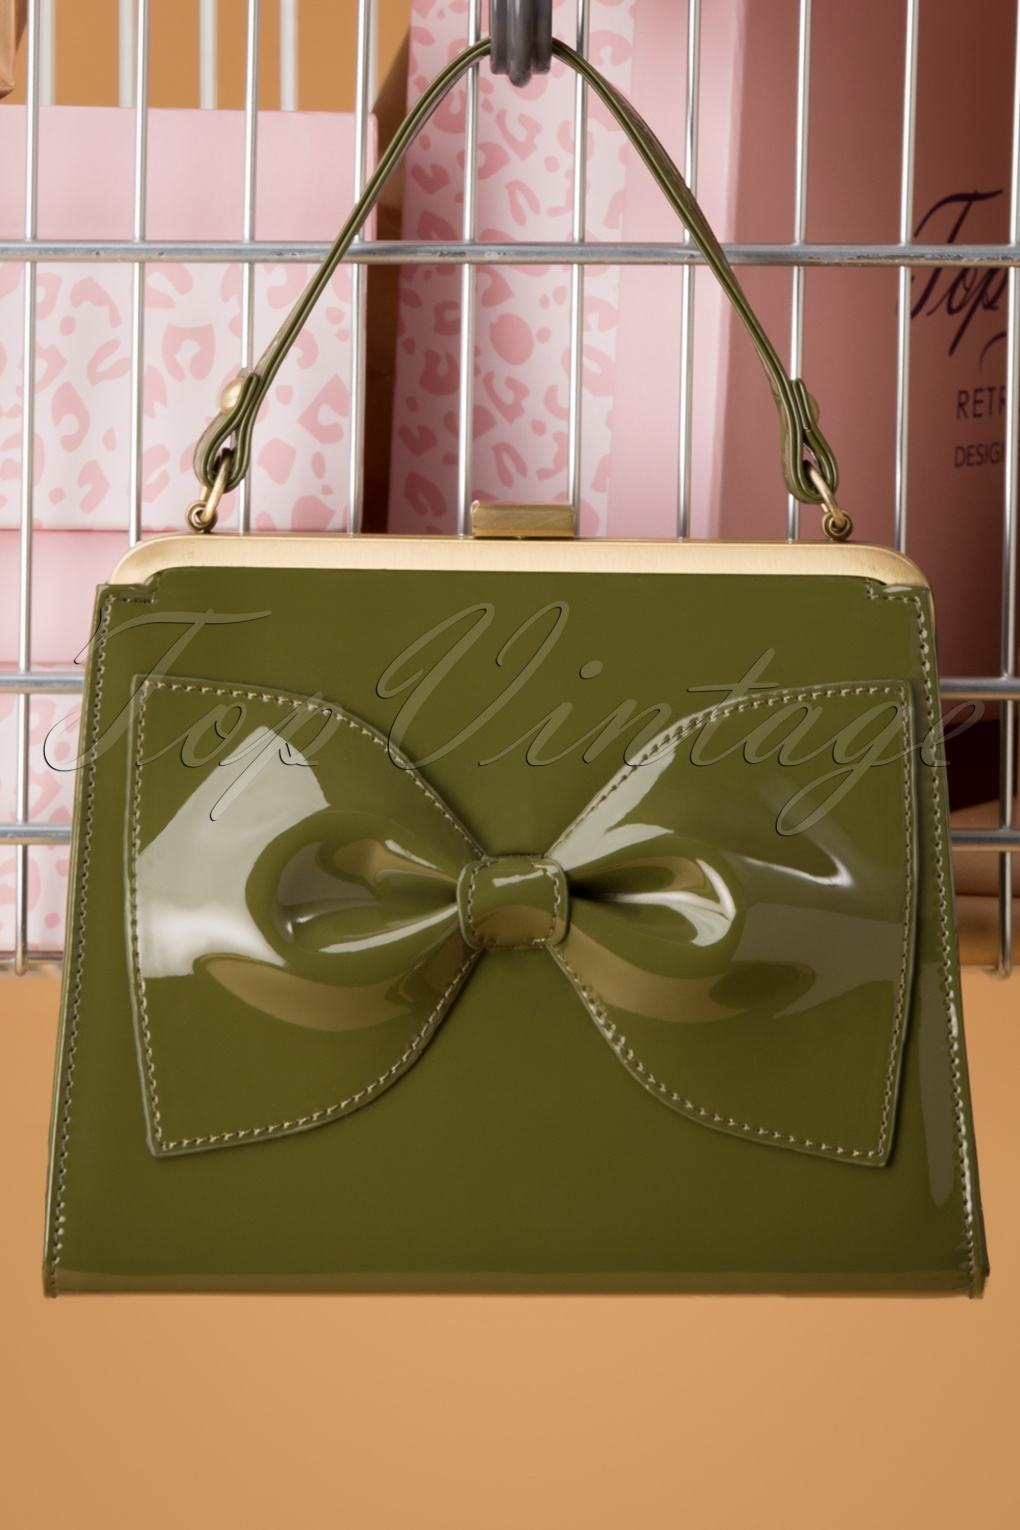 1950s Handbags, Purses, and Evening Bag Styles 50s Inez Says Go Handbag in Grass Green £26.77 AT vintagedancer.com